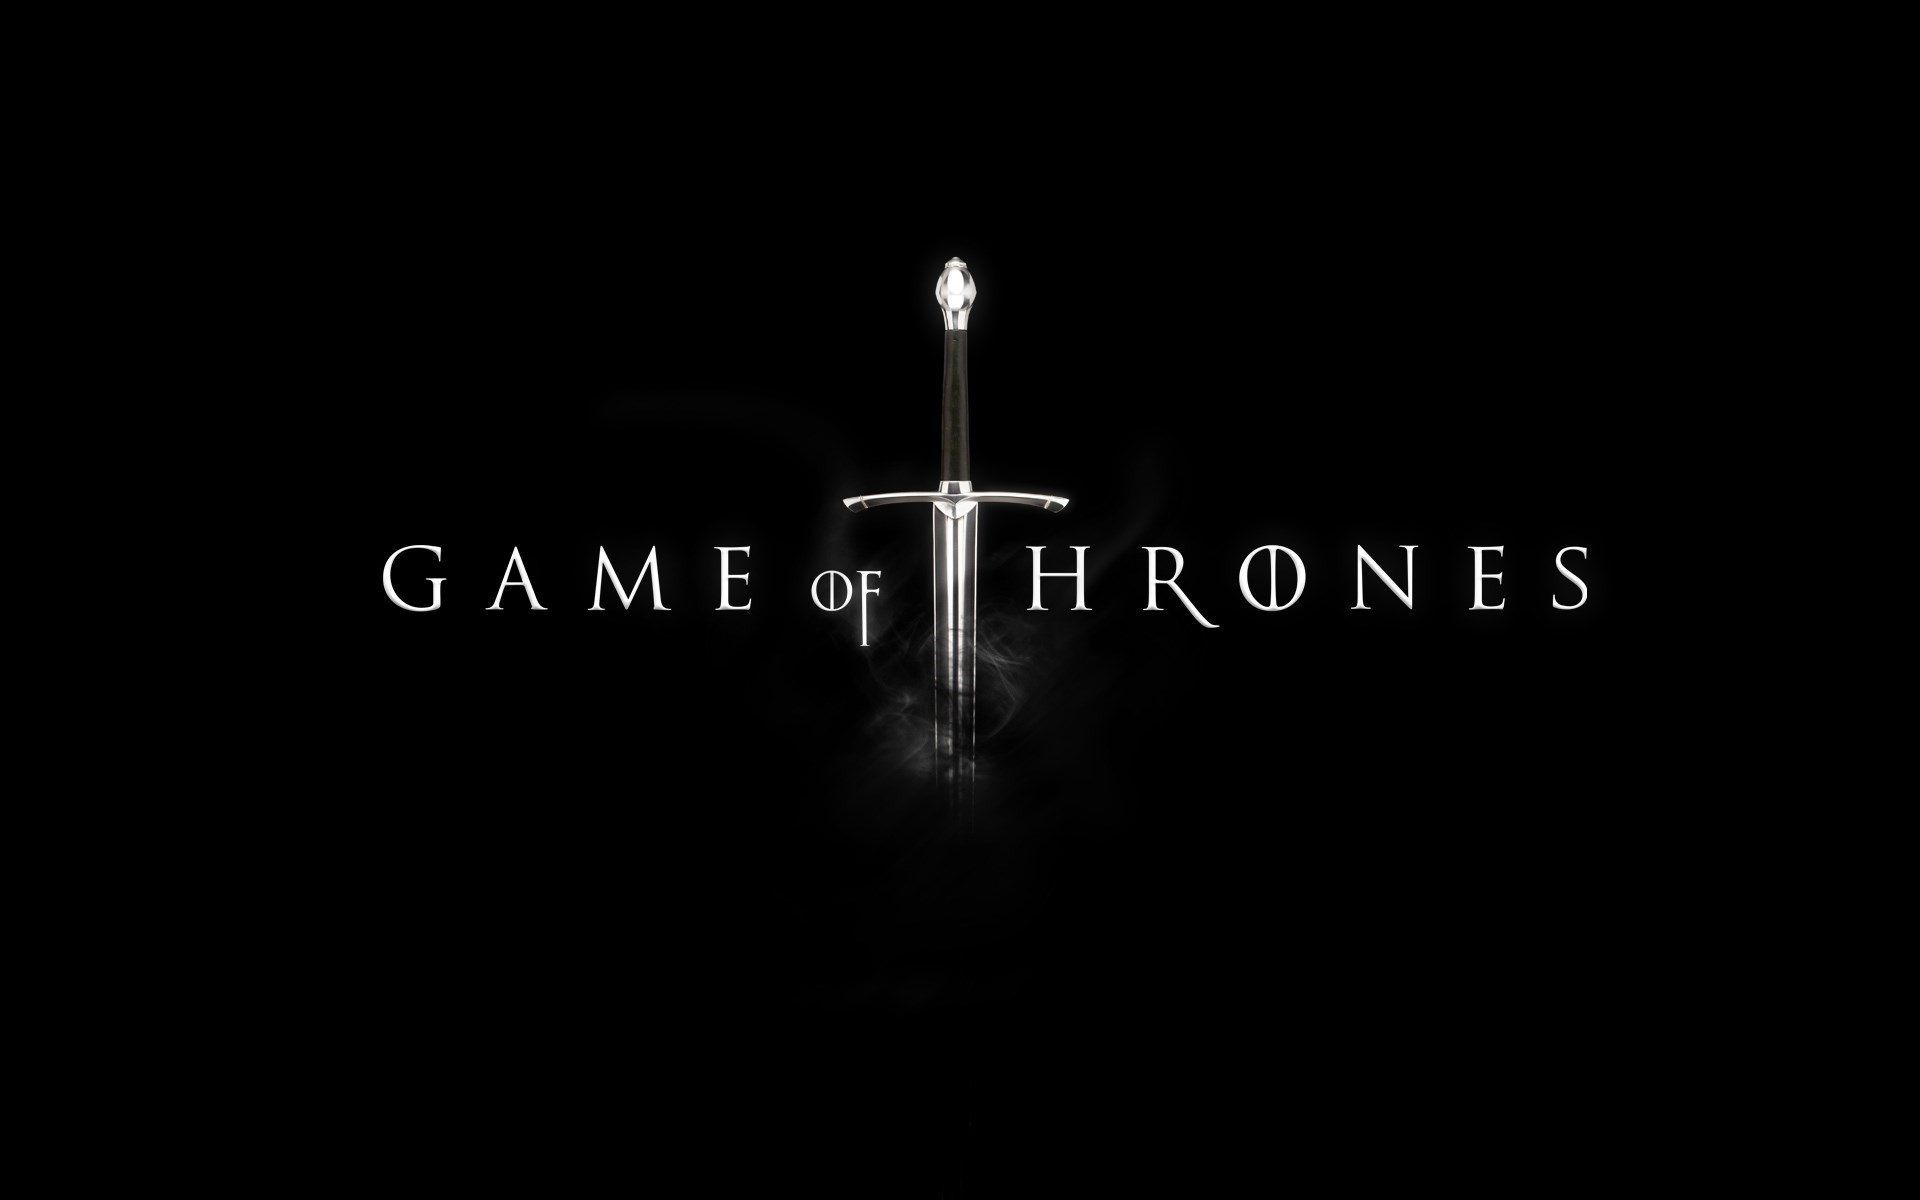 1920x1200 Game Of Thrones Hd Wallpaper For Macbook Pro Game Of Thrones Poster Game Of Thrones Art Game Of Thrones Movie